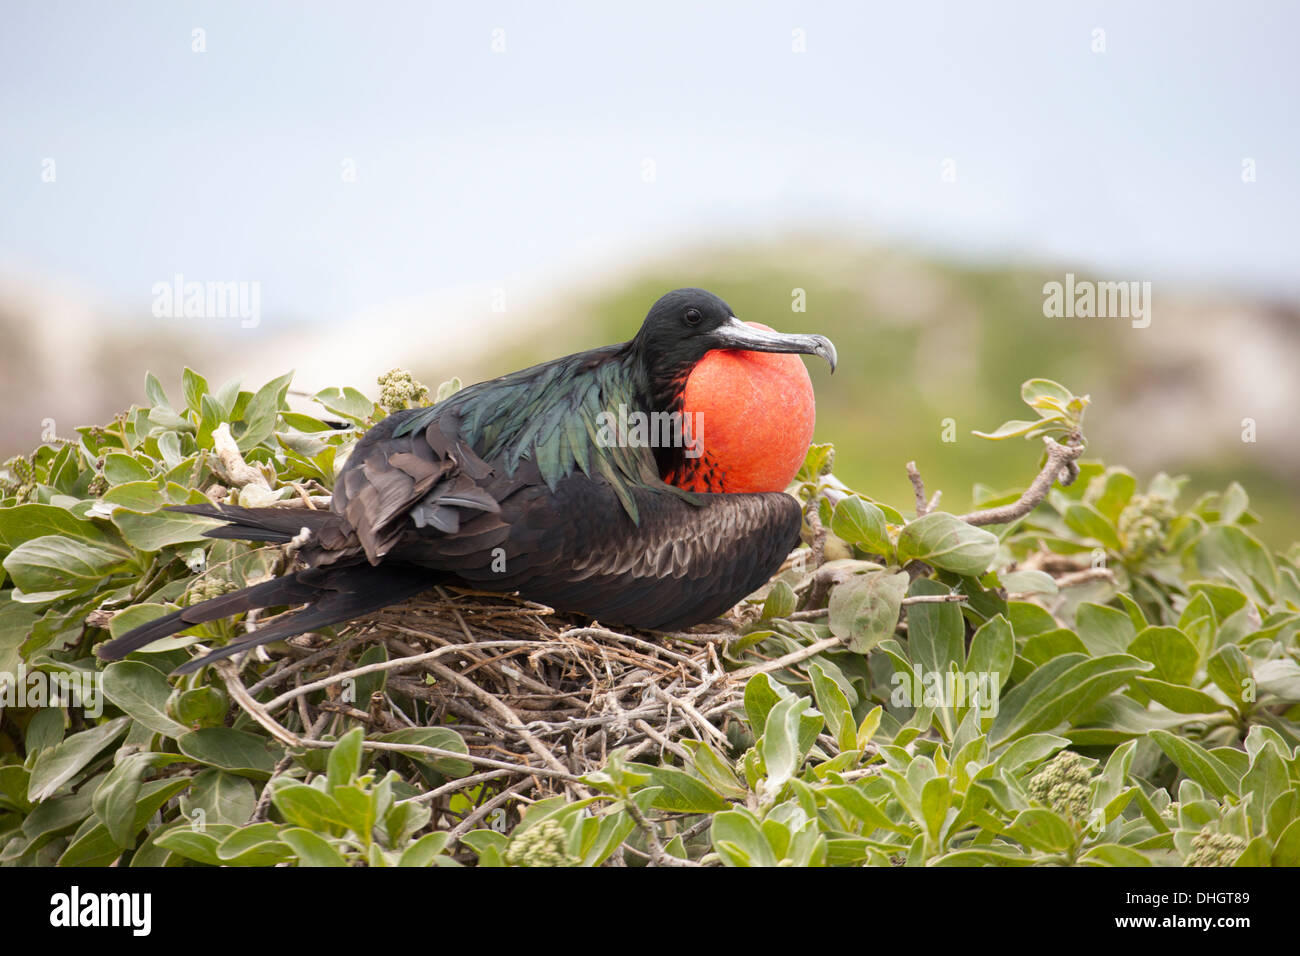 Great Frigatebird (Fregata minor palmerstoni) male with gular pouch inflated to attract females during courtship display - Stock Image